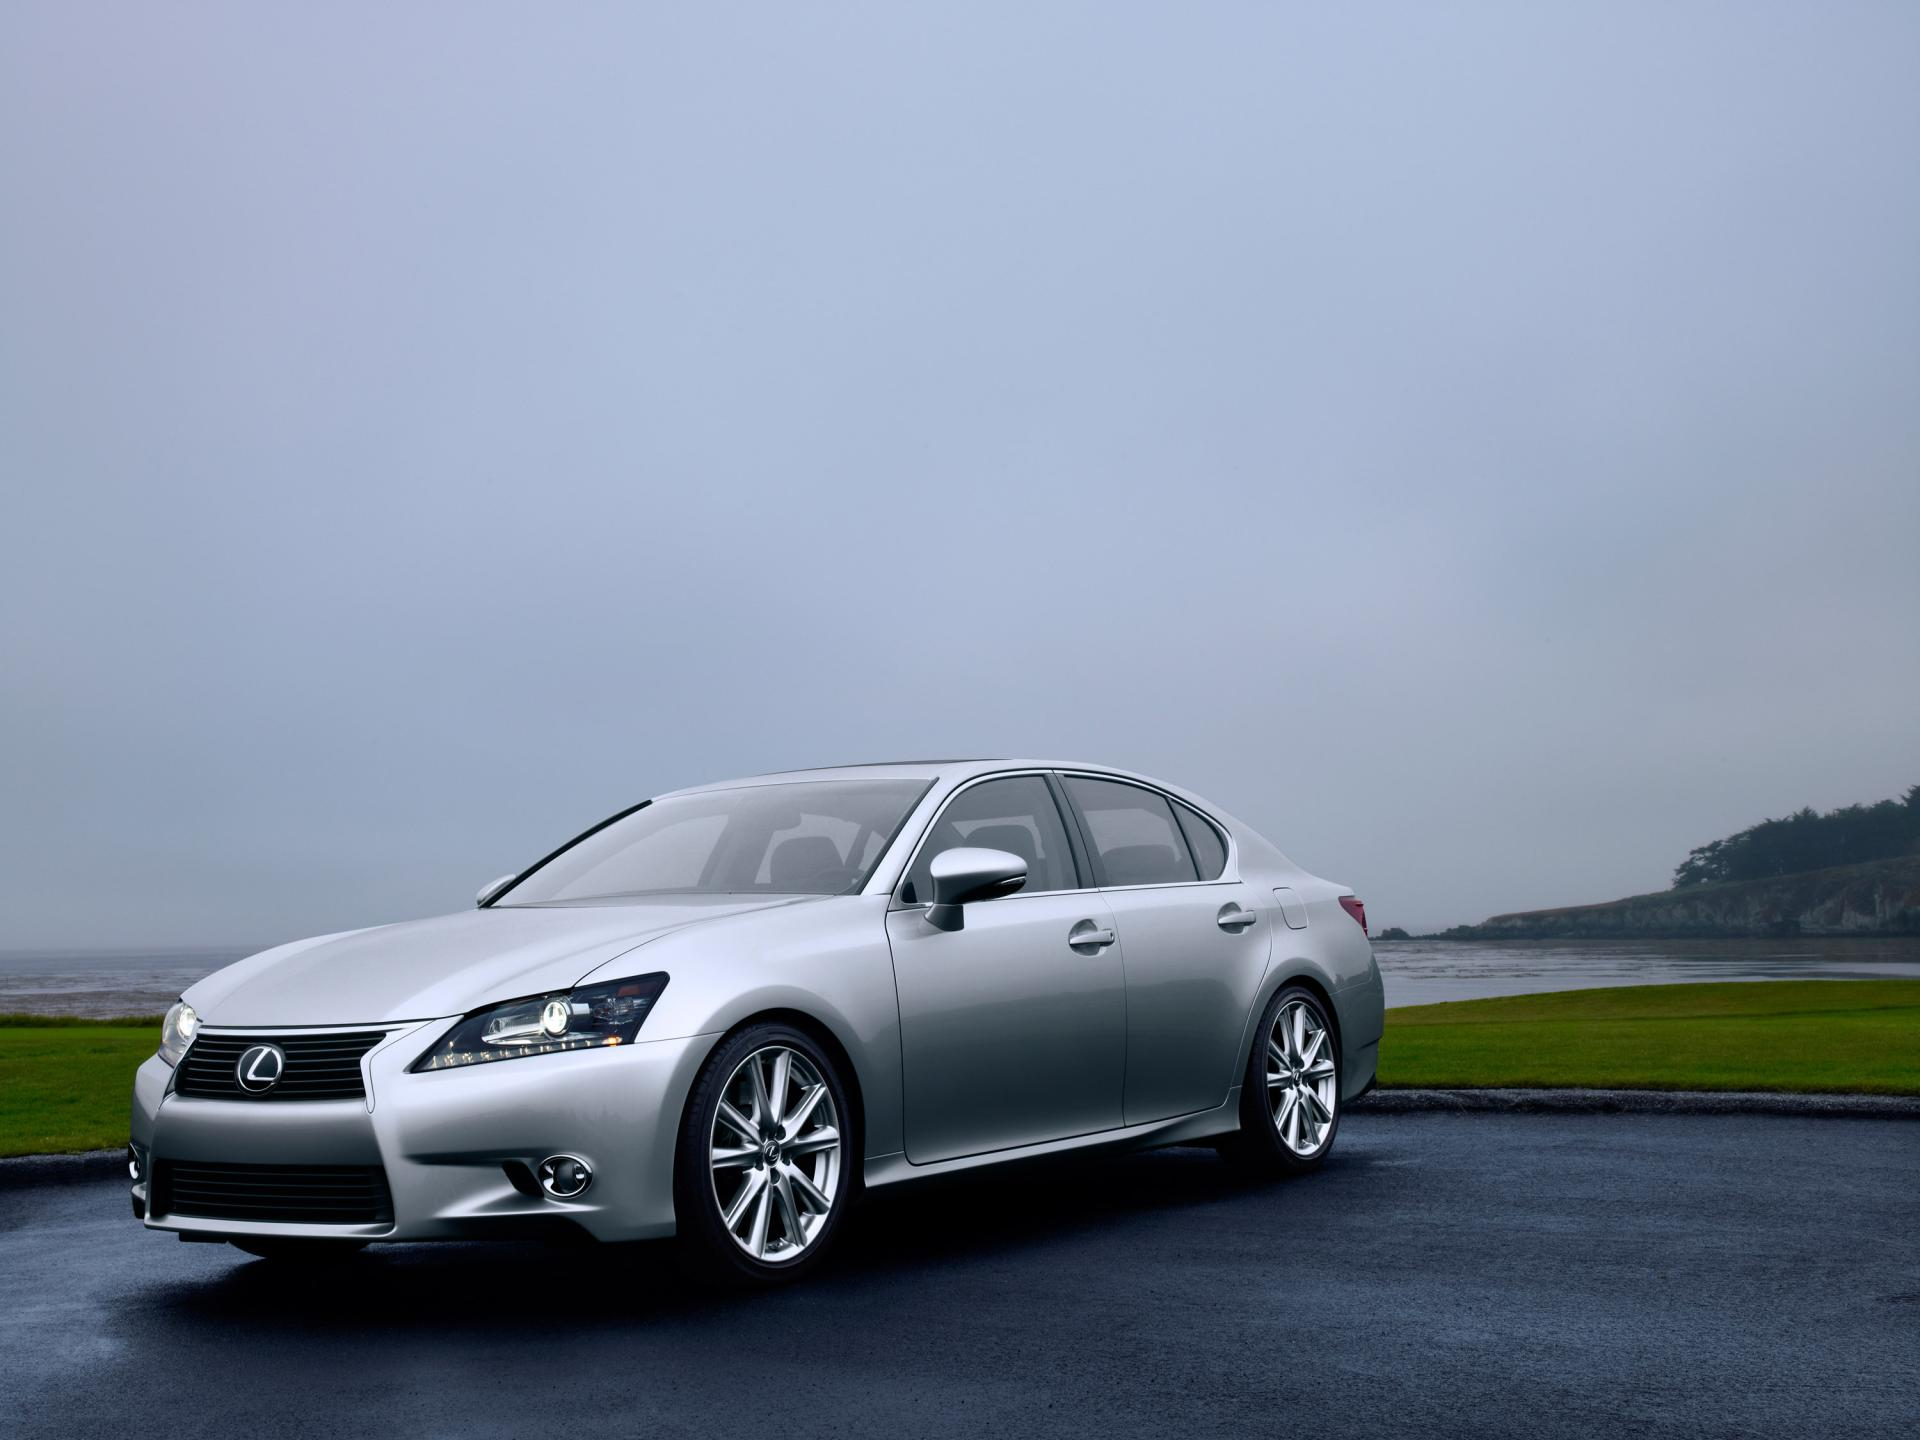 2013 Lexus GS 350 News and Information